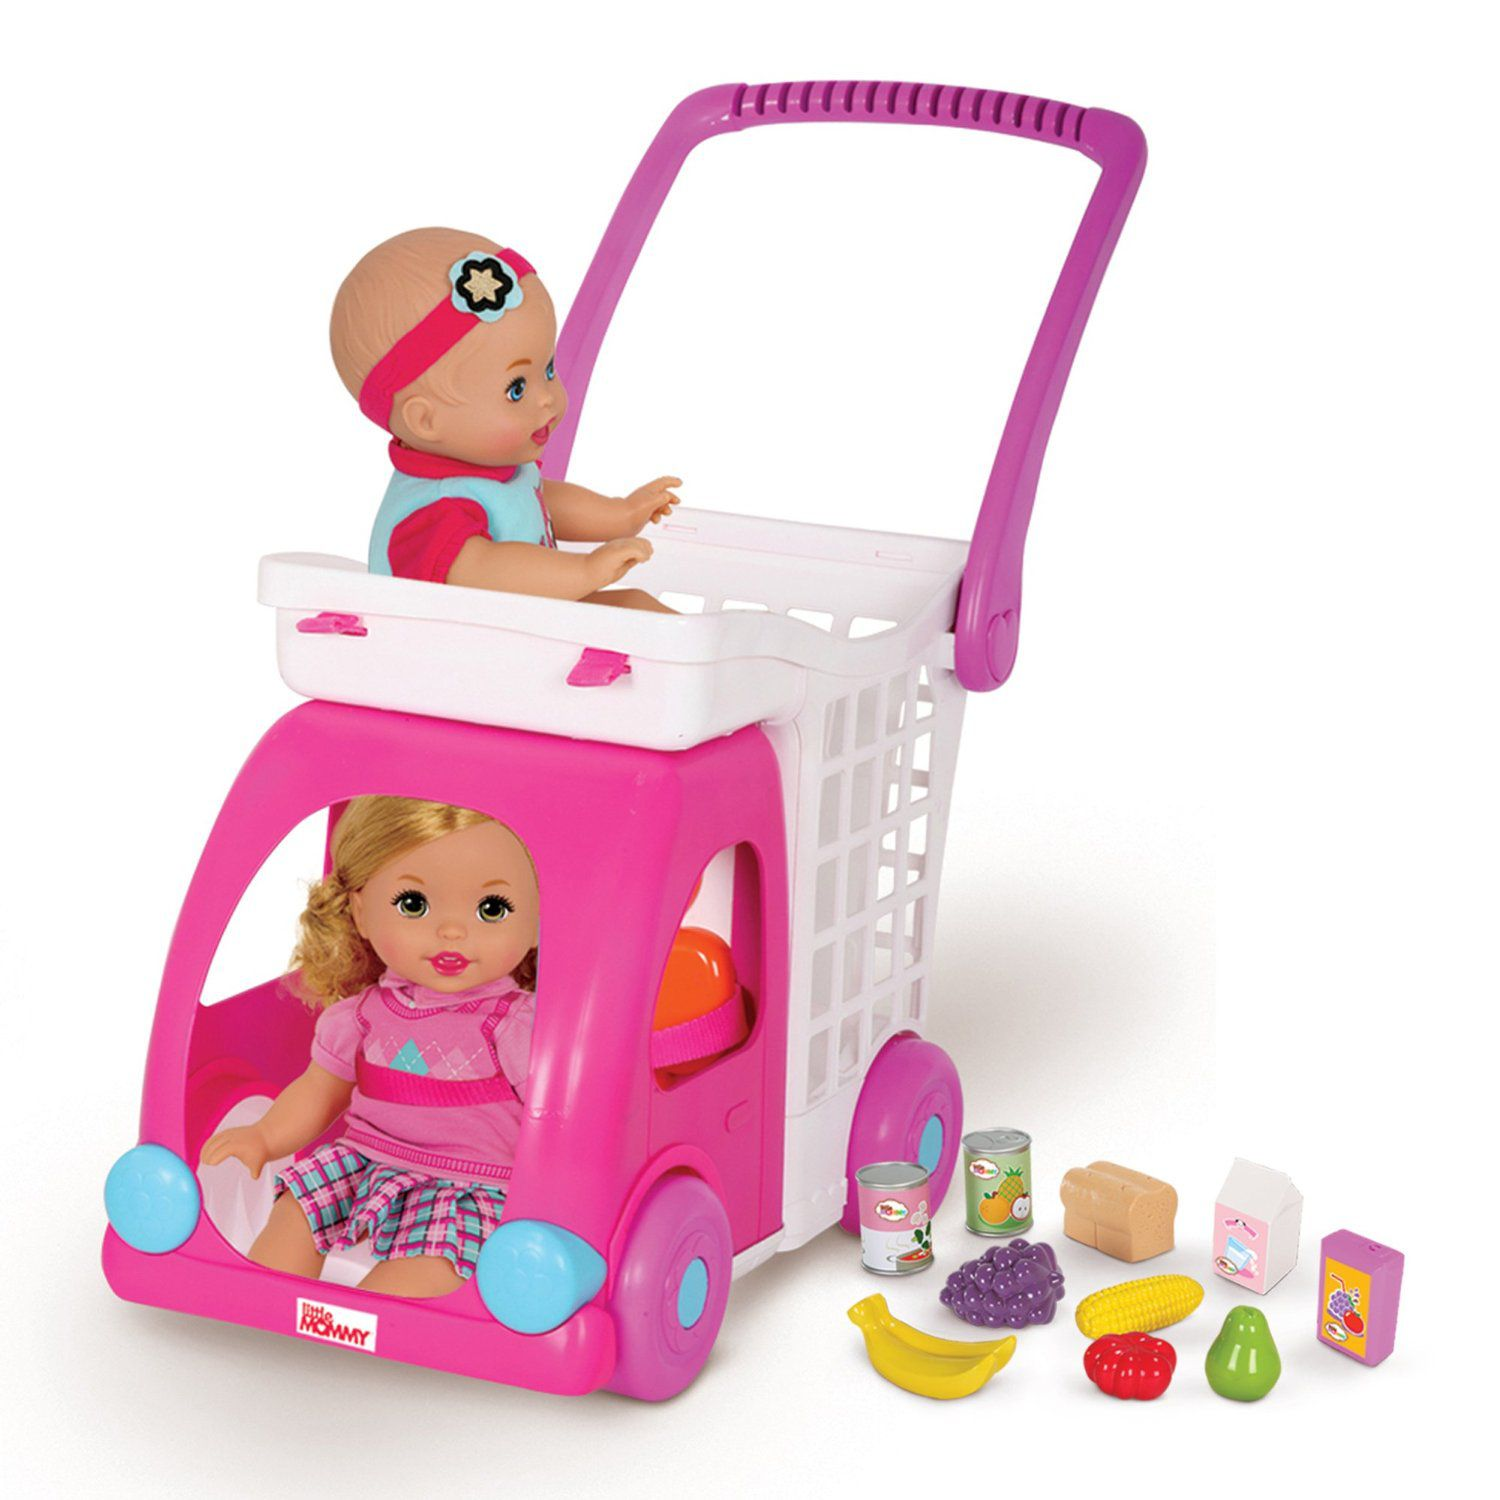 Top 15 Baby Doll Accessories